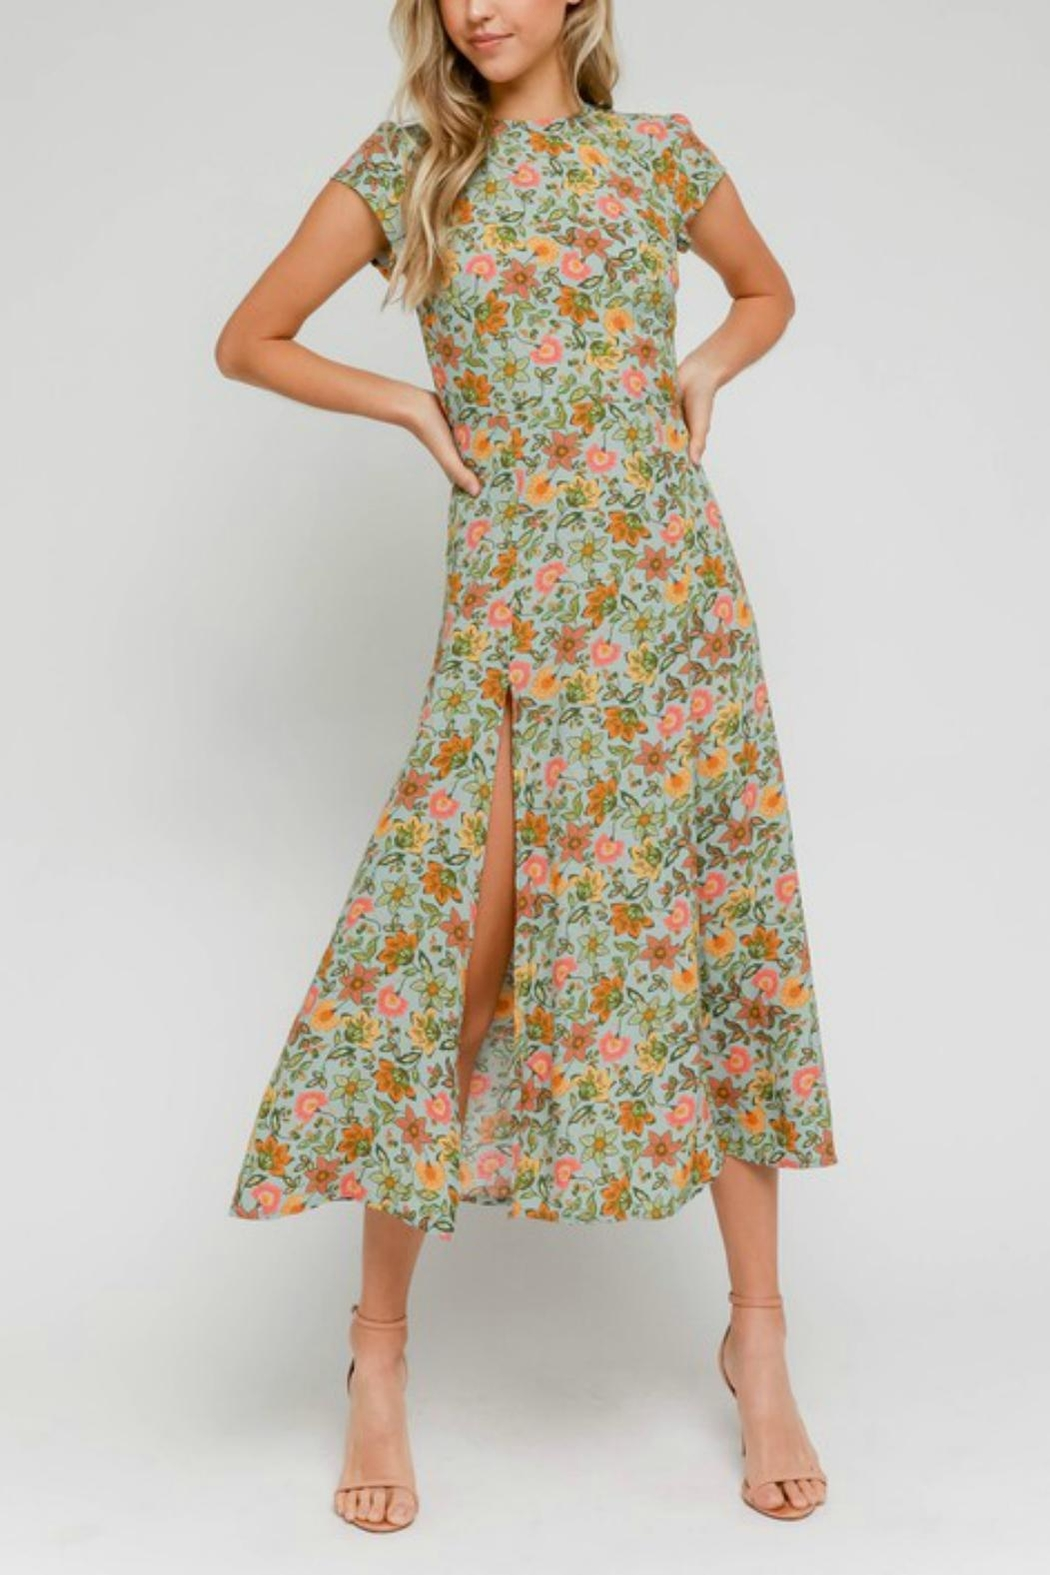 Pretty Little Things Floral Midi Dress - Front Full Image